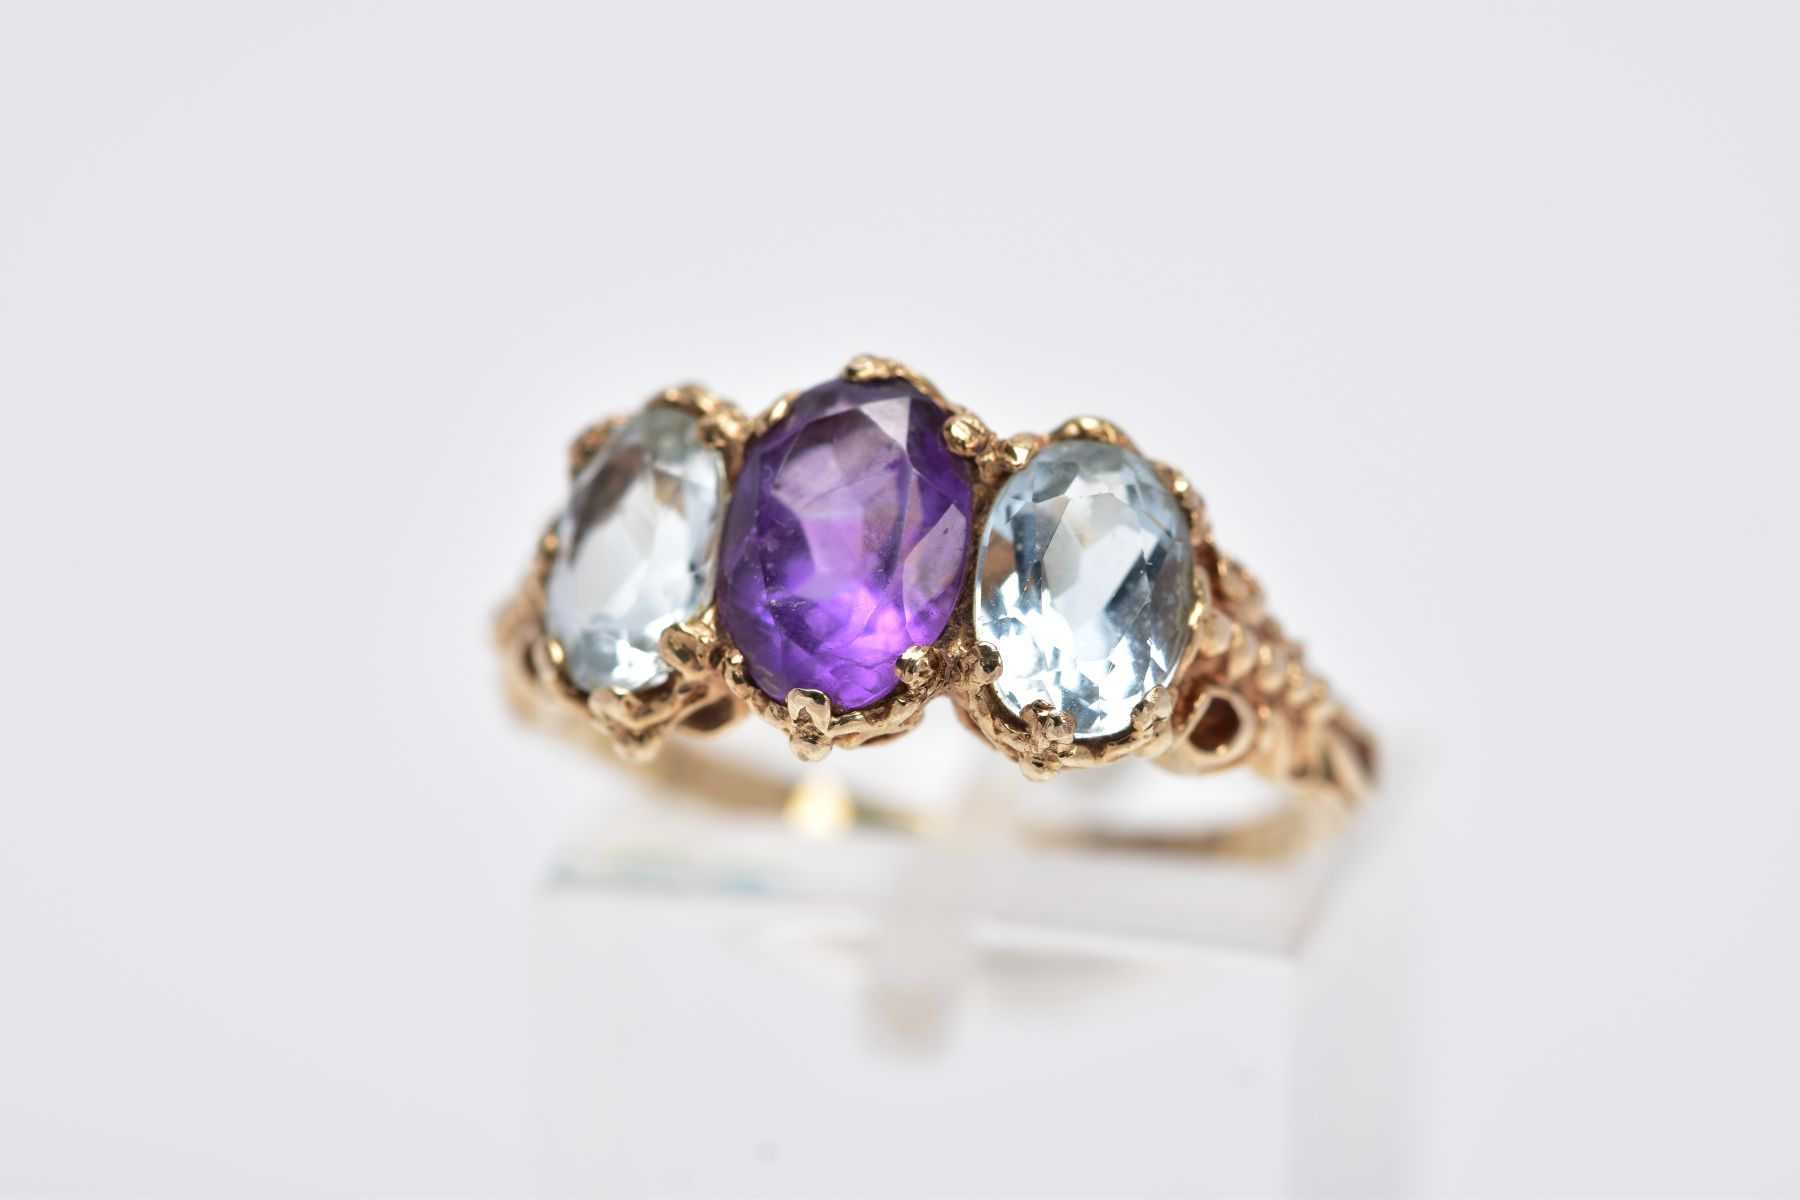 A 9CT GOLD THREE STONE RING, centring on an oval cut amethyst, flanked with two oval cut